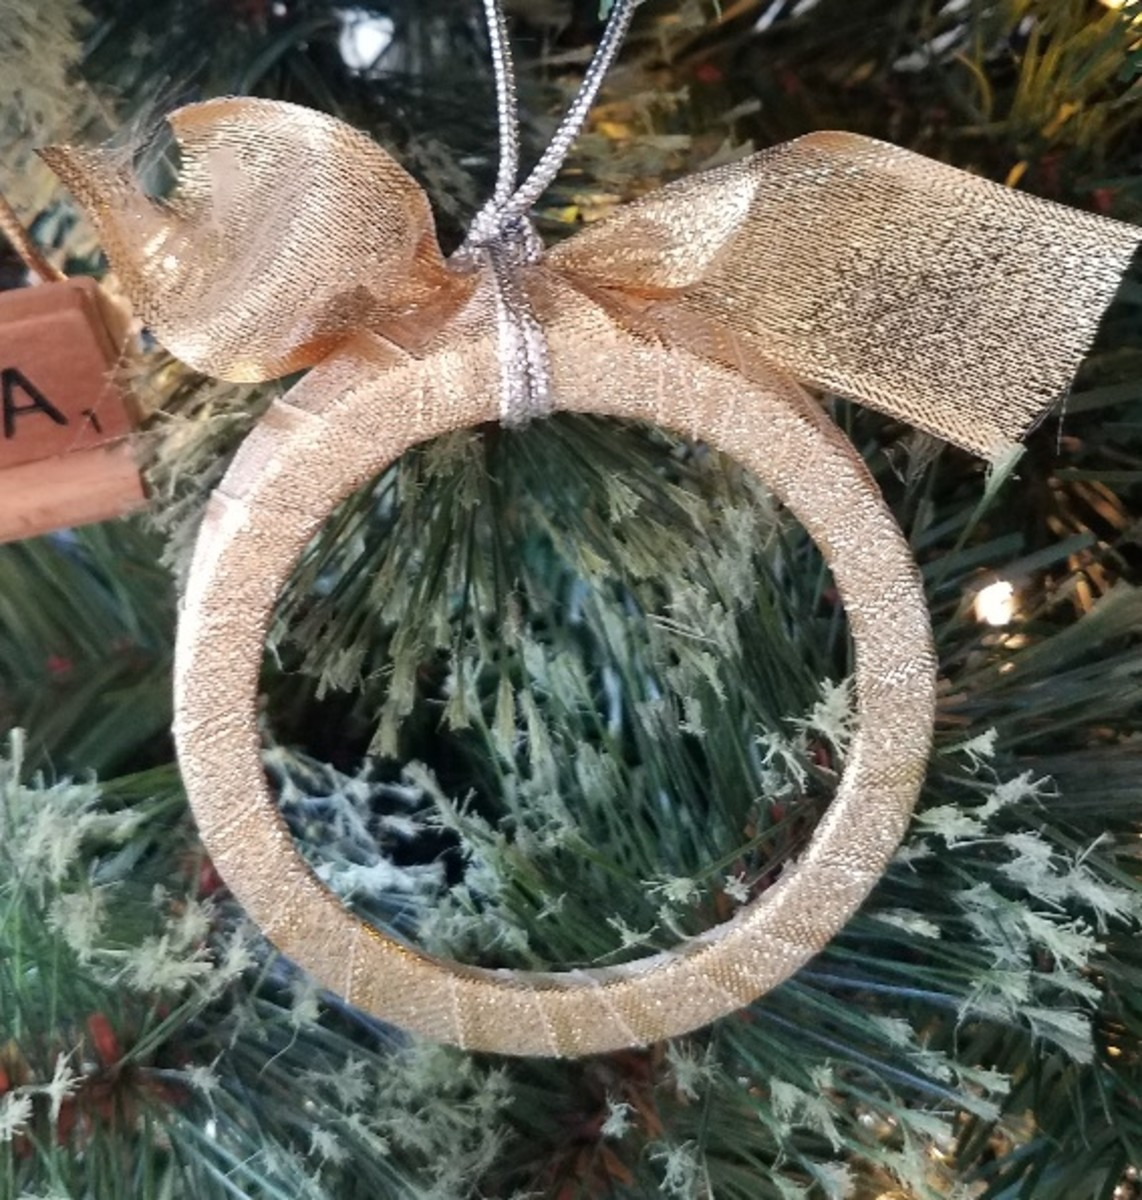 You'd never know this ornament was previously a mason jar ring.